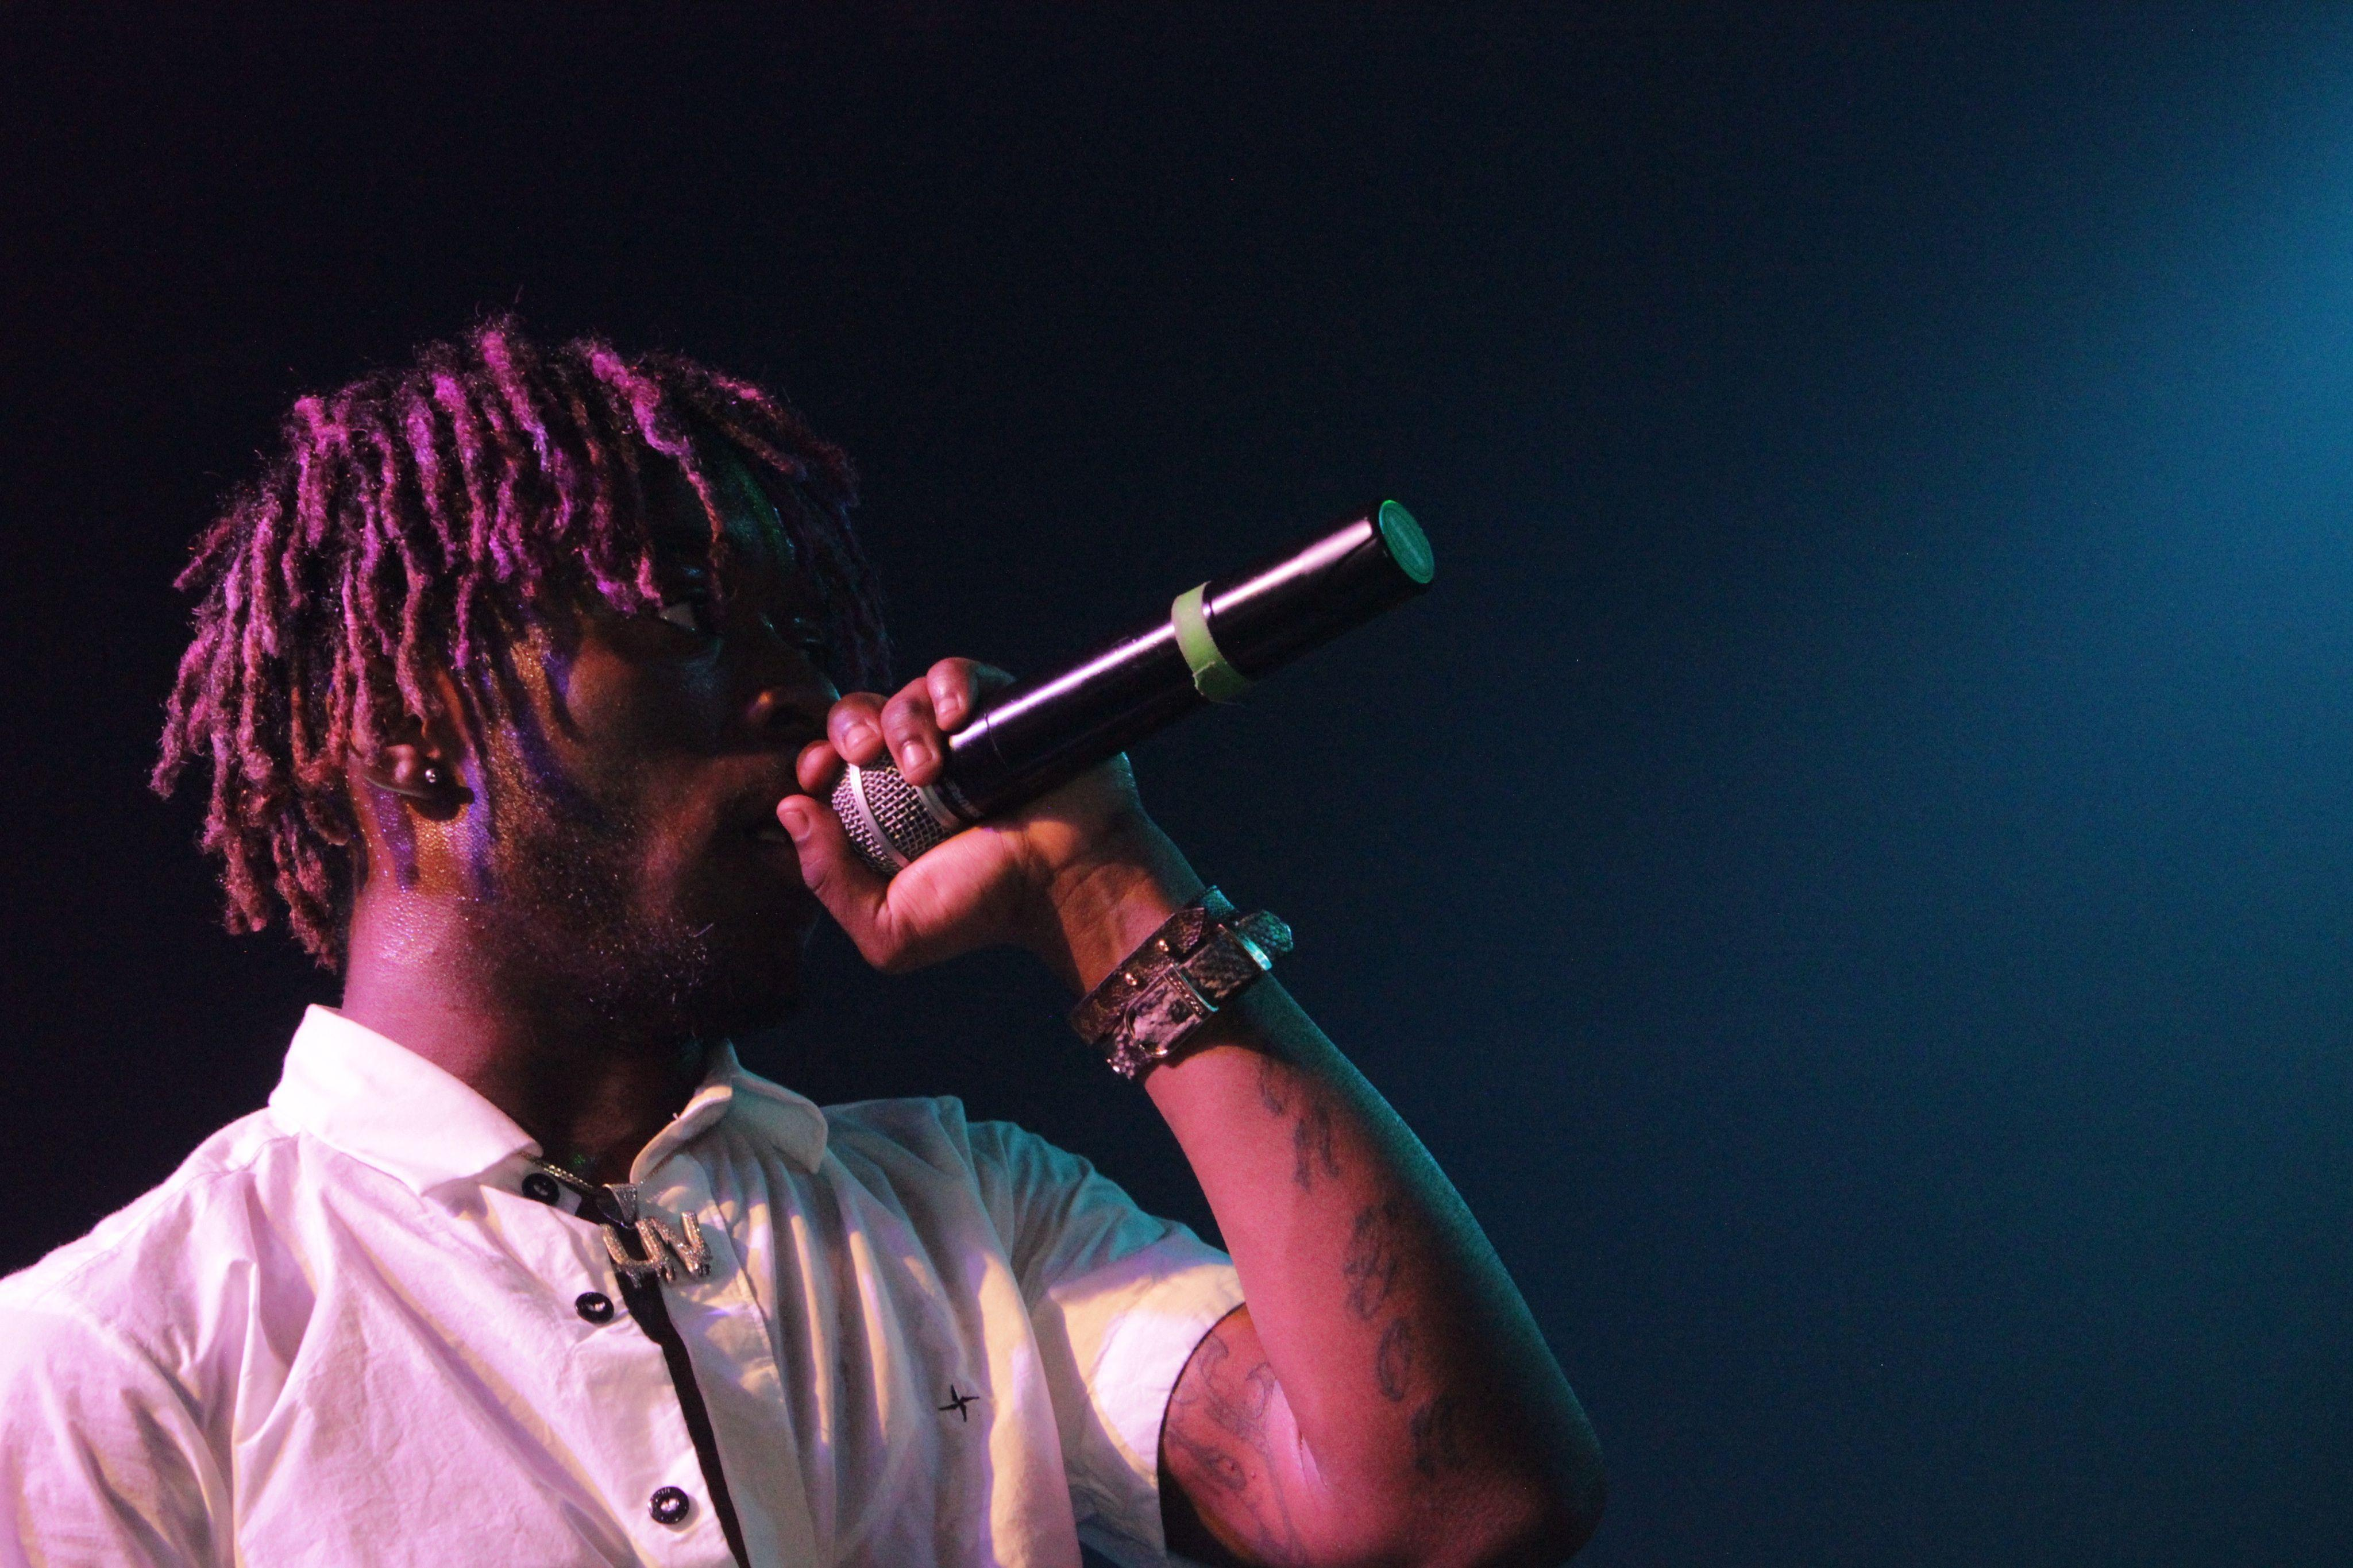 RESPECT. Recap: Lil Uzi Vert Show in Philly